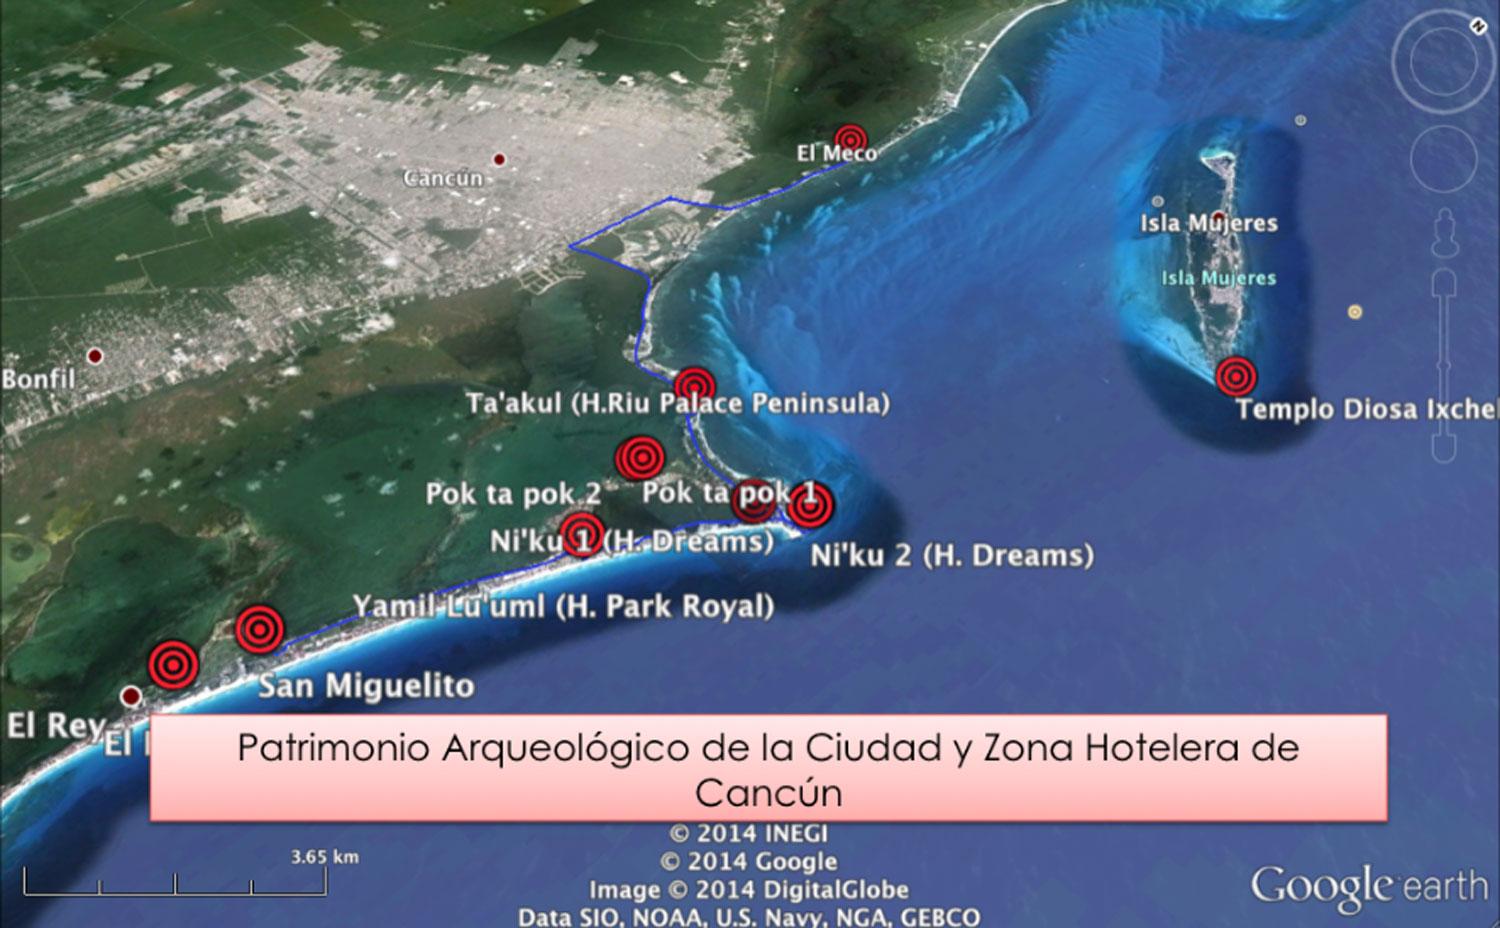 Some of the 17 ruins sites in today's Cancún. Below: fish fossils found in Cancún zone.